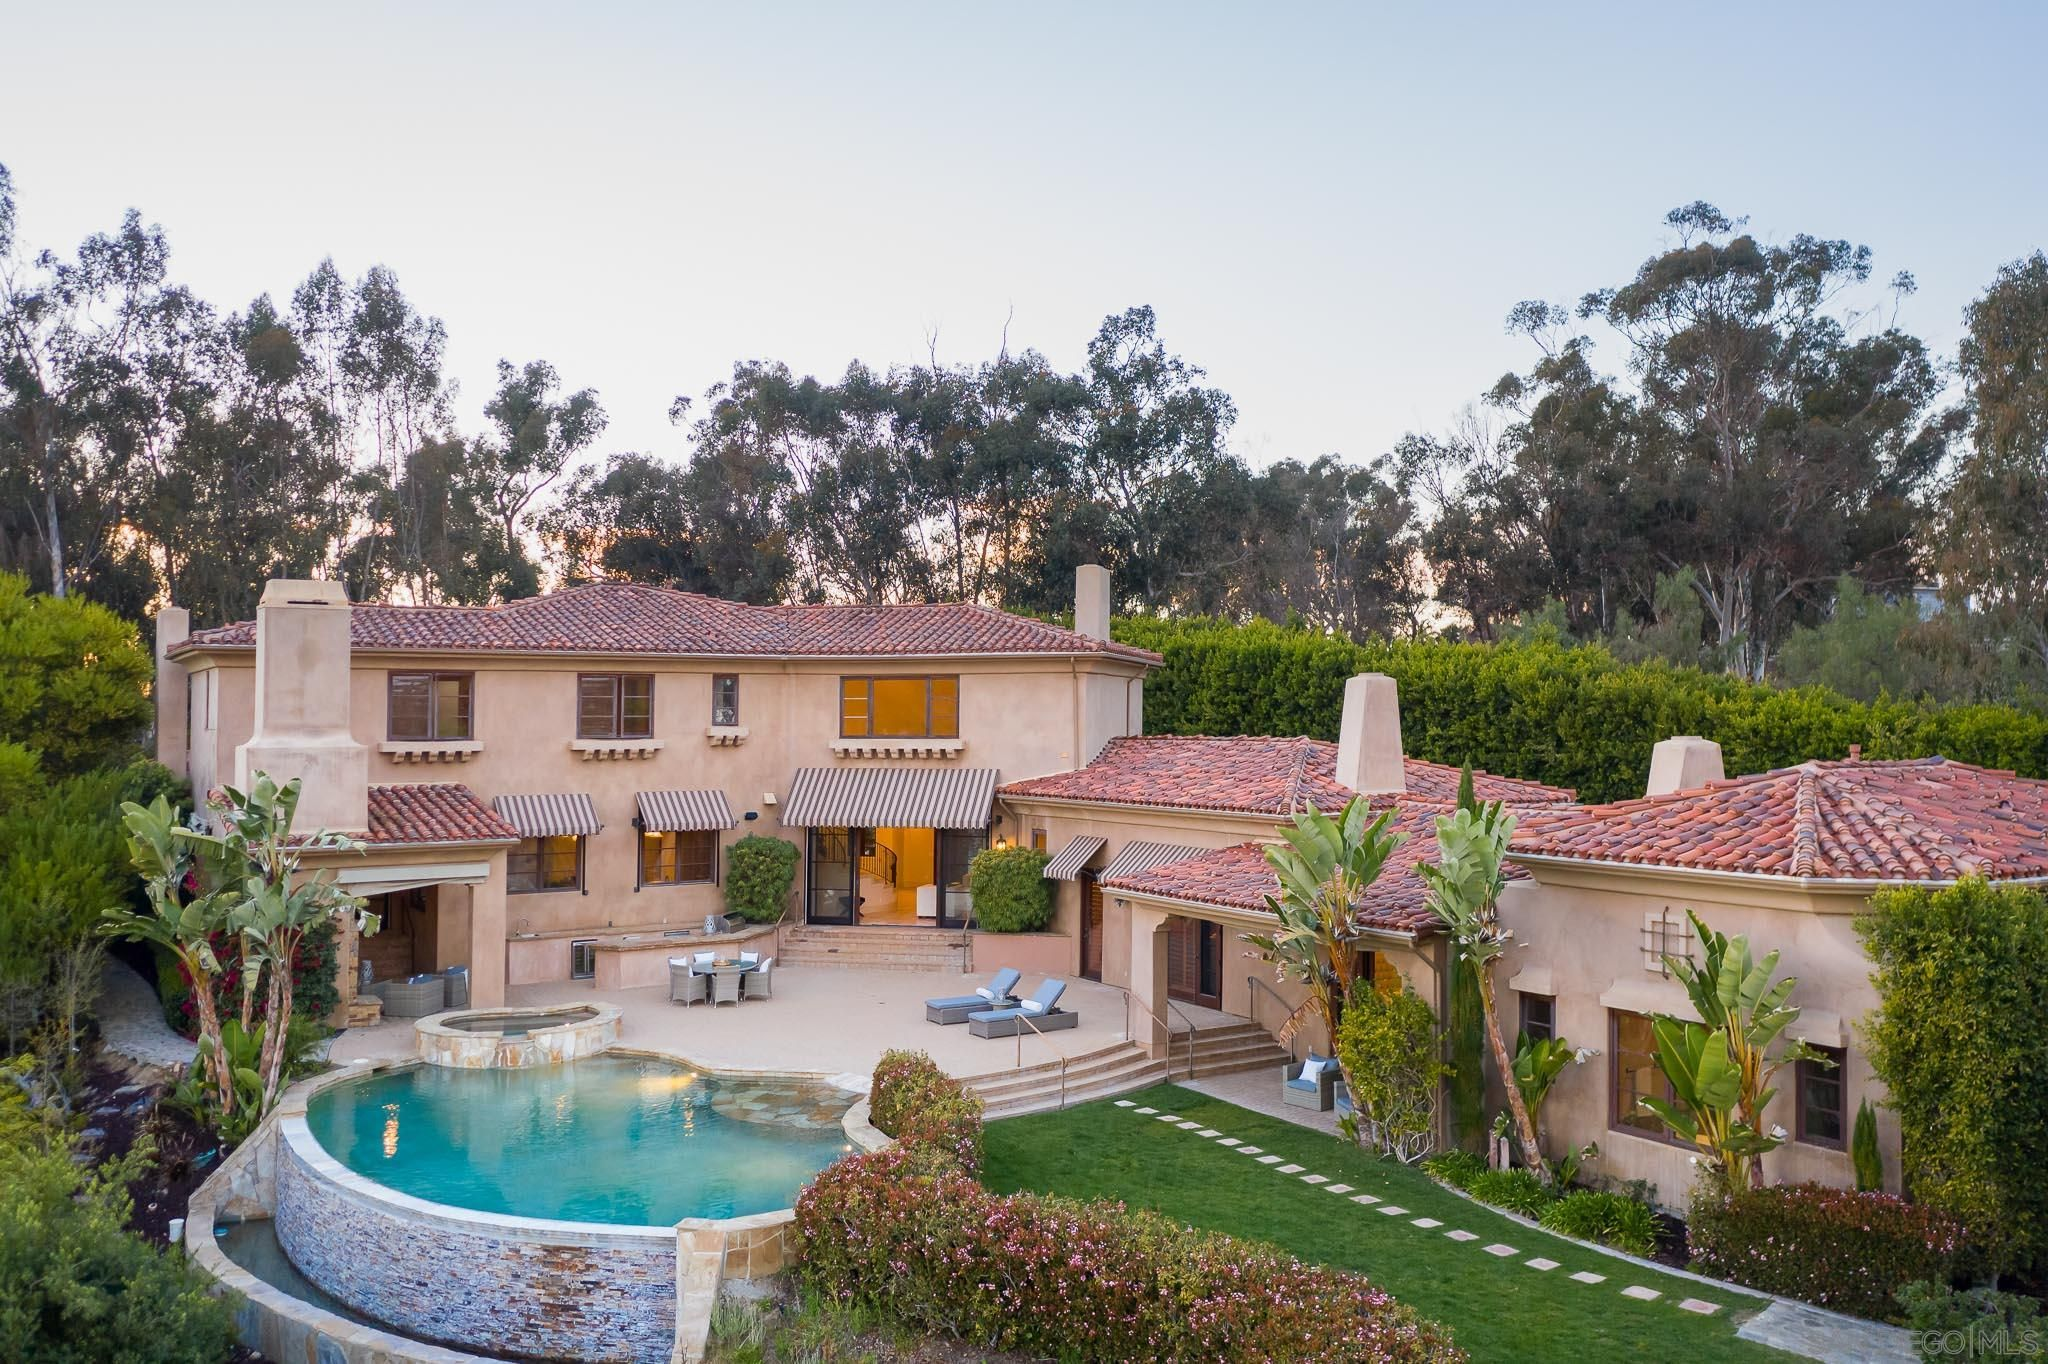 Main Photo: SAN DIEGO House for sale : 8 bedrooms : 5171 Del Mar Mesa Rd